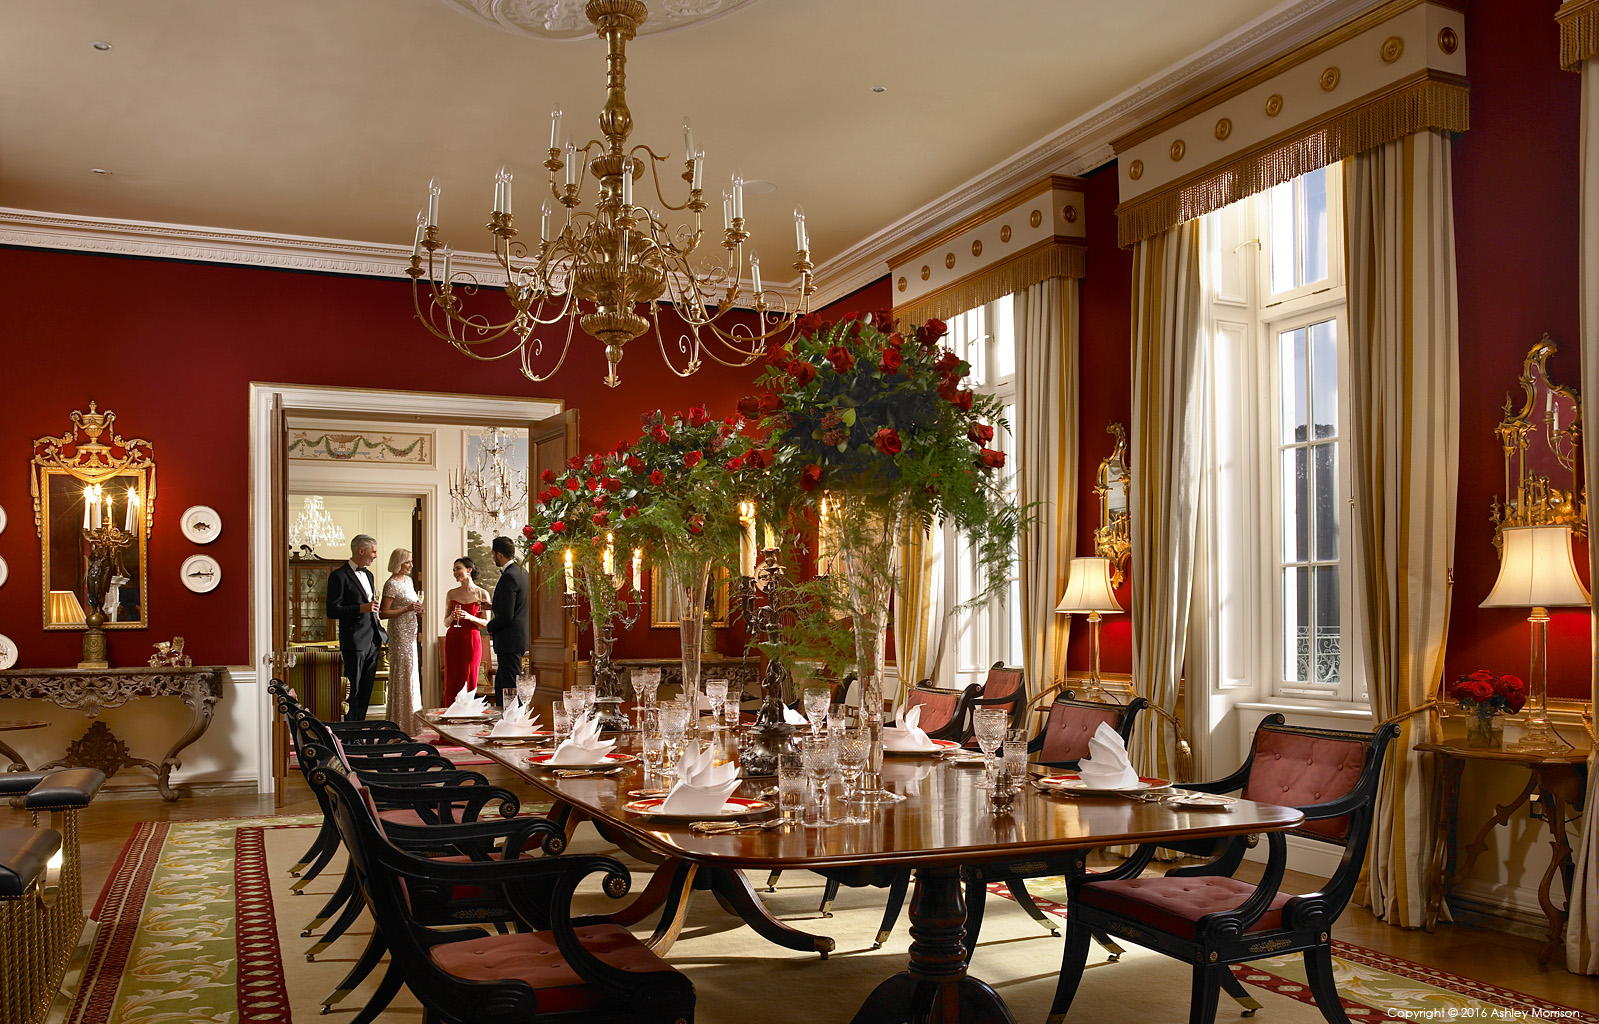 The dining room in Straffan House at The K Club in County Kildare.